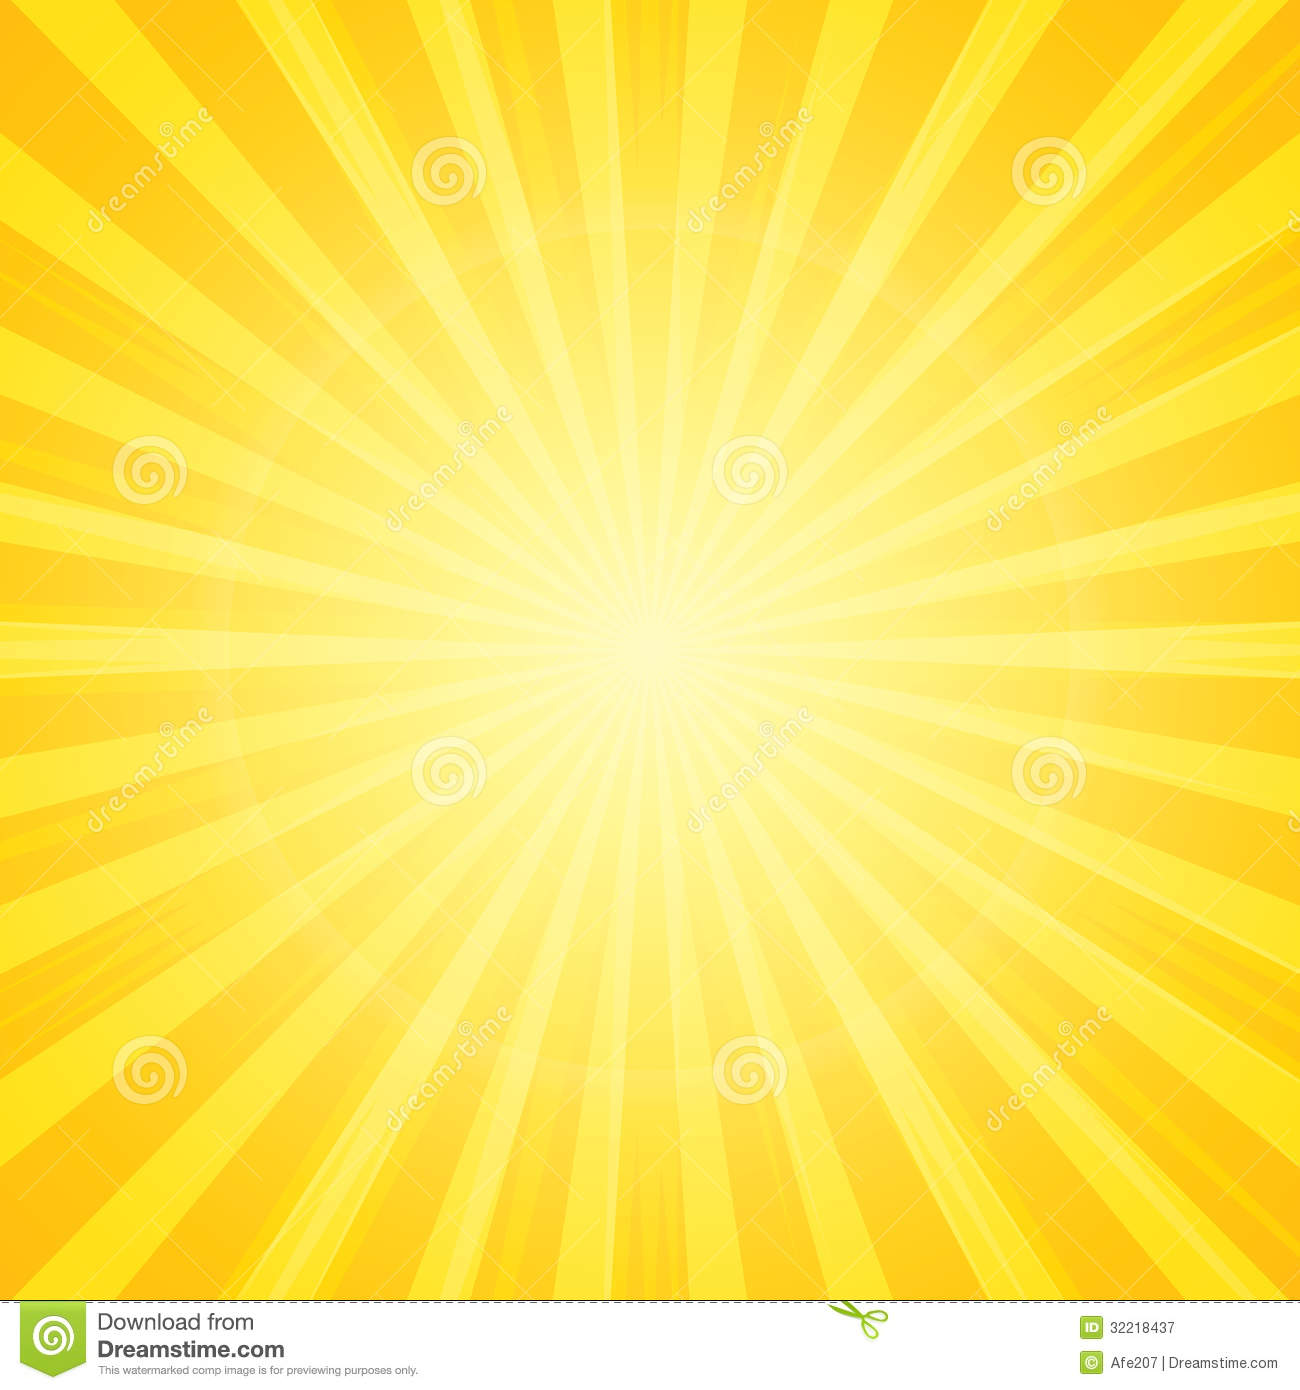 Sun With Rays Background Royalty Free Stock Photography - Image ...